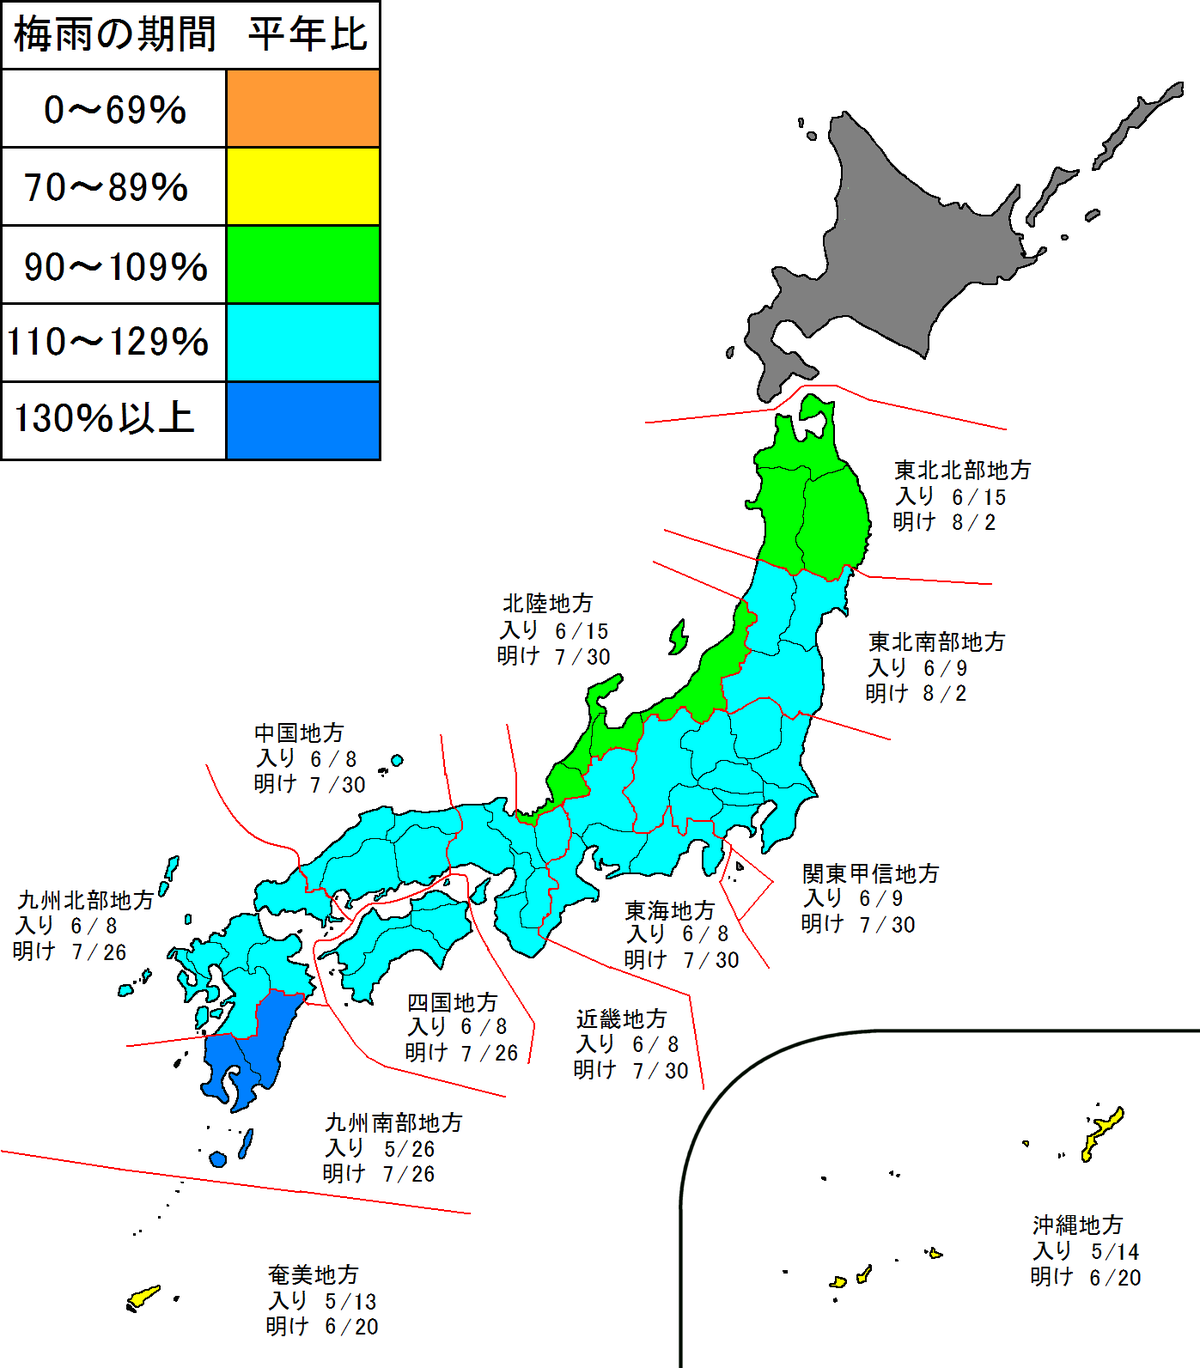 File:Japan tsuyu 2006.png - Wikimedia Commons